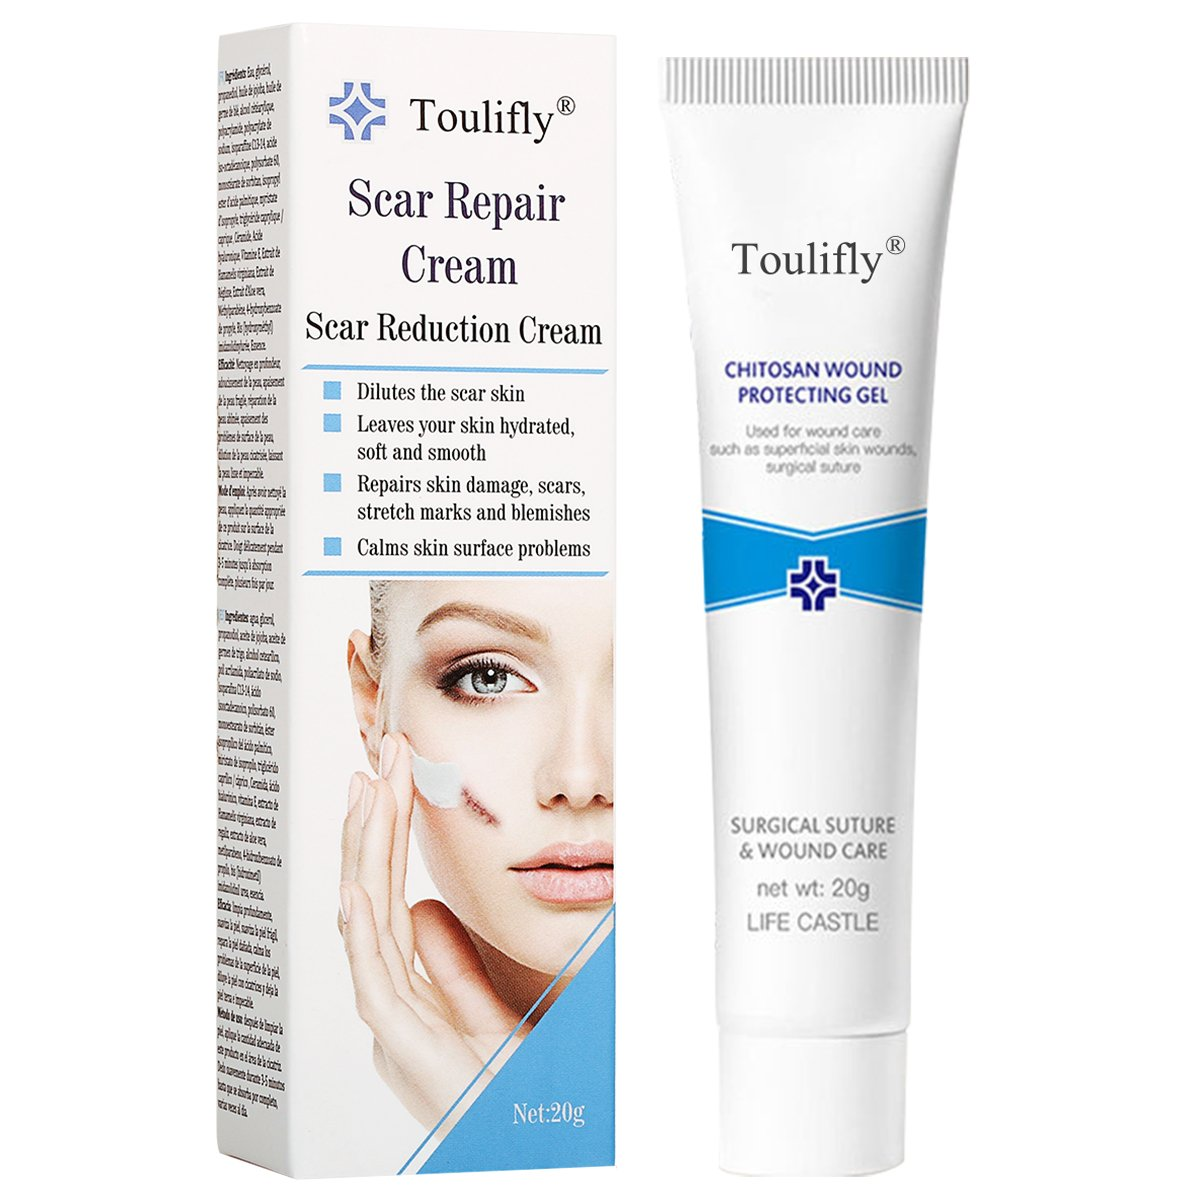 Scar Removal,Acne Scar Removal,Scar Gel,Scar Treatment Cream,Scar Fade Cream for Face and Body Reduces the Appearance of Old & New Scars